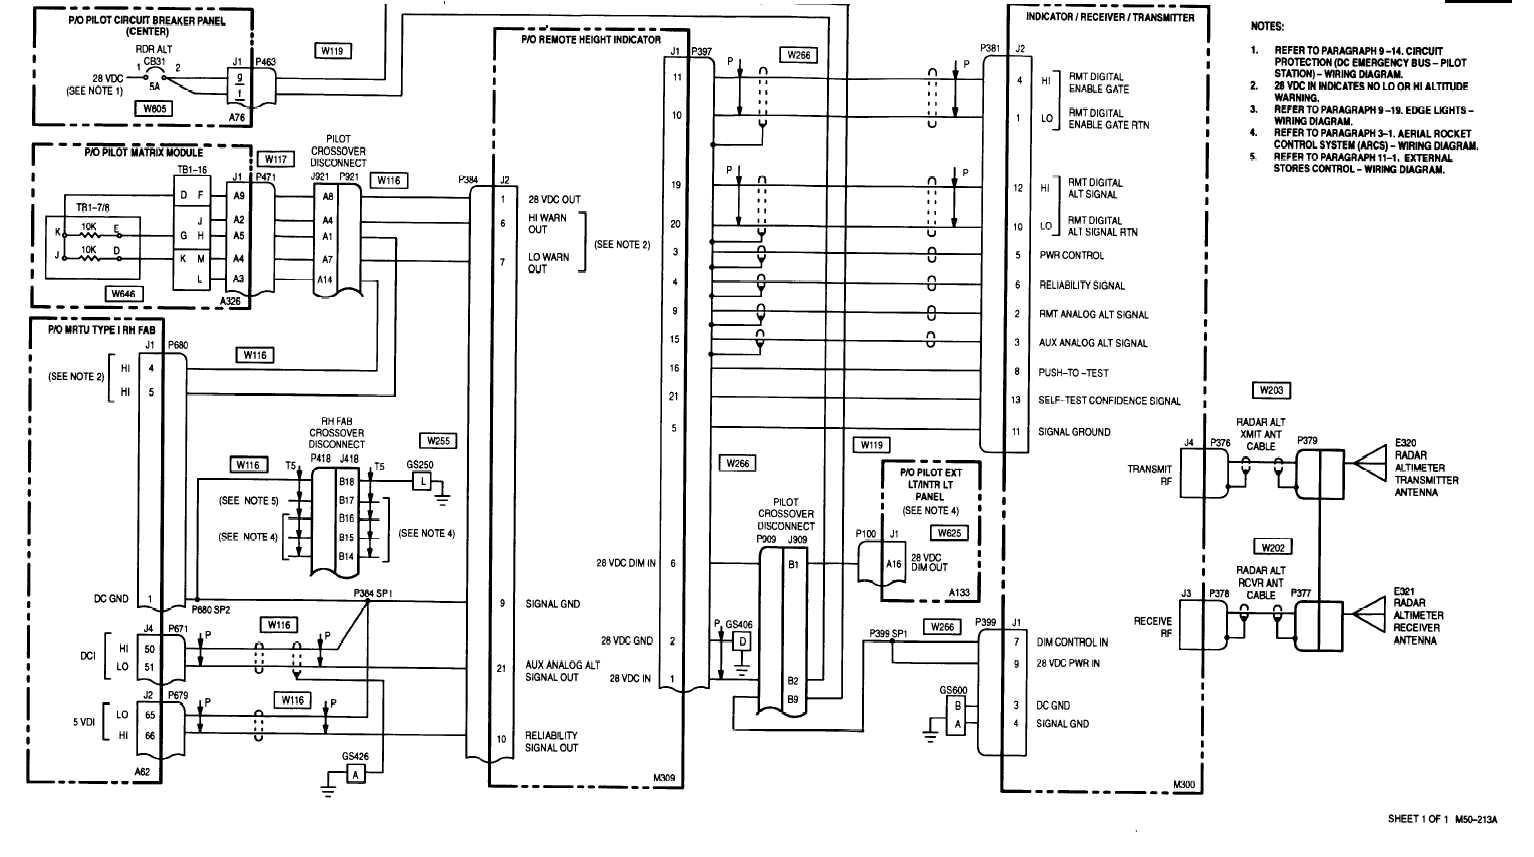 rc helicopter circuit diagram honda mt 50 wiring free engine image